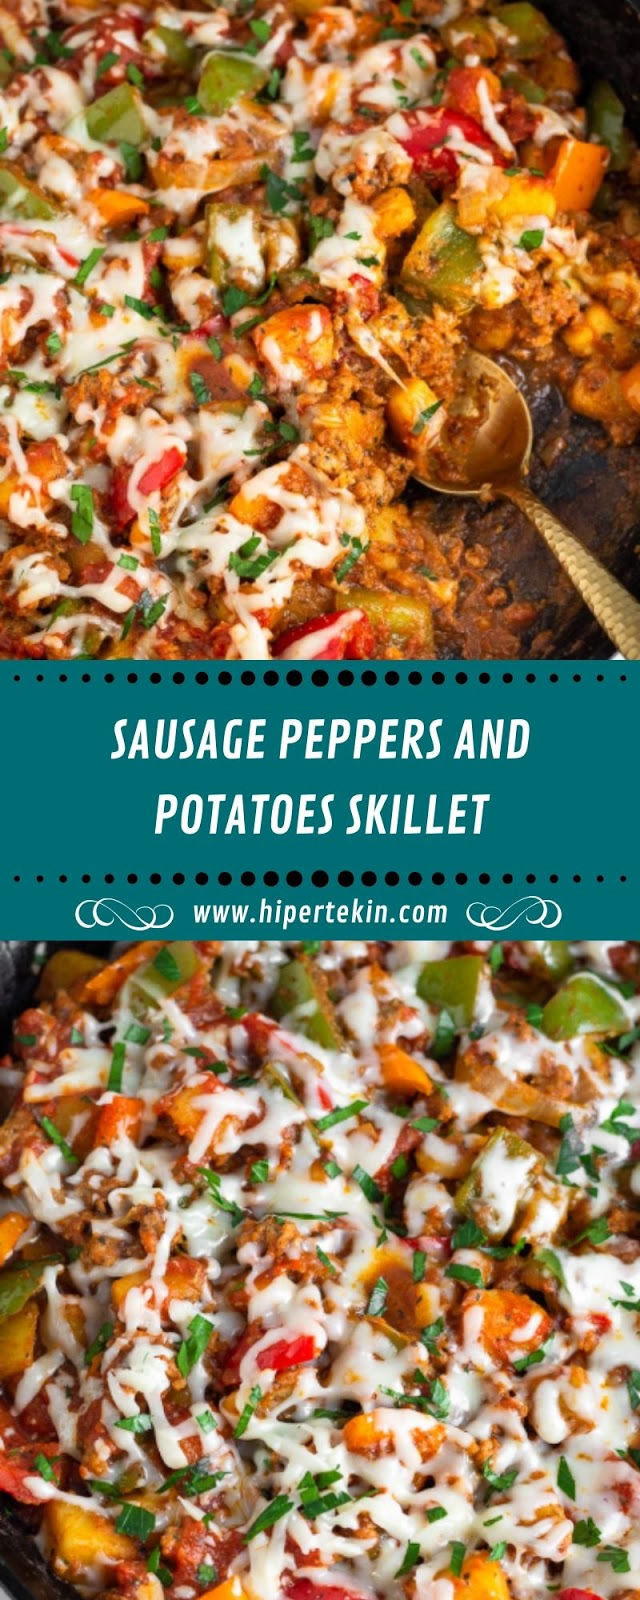 SAUSAGE PEPPERS AND POTATOES SKILLET